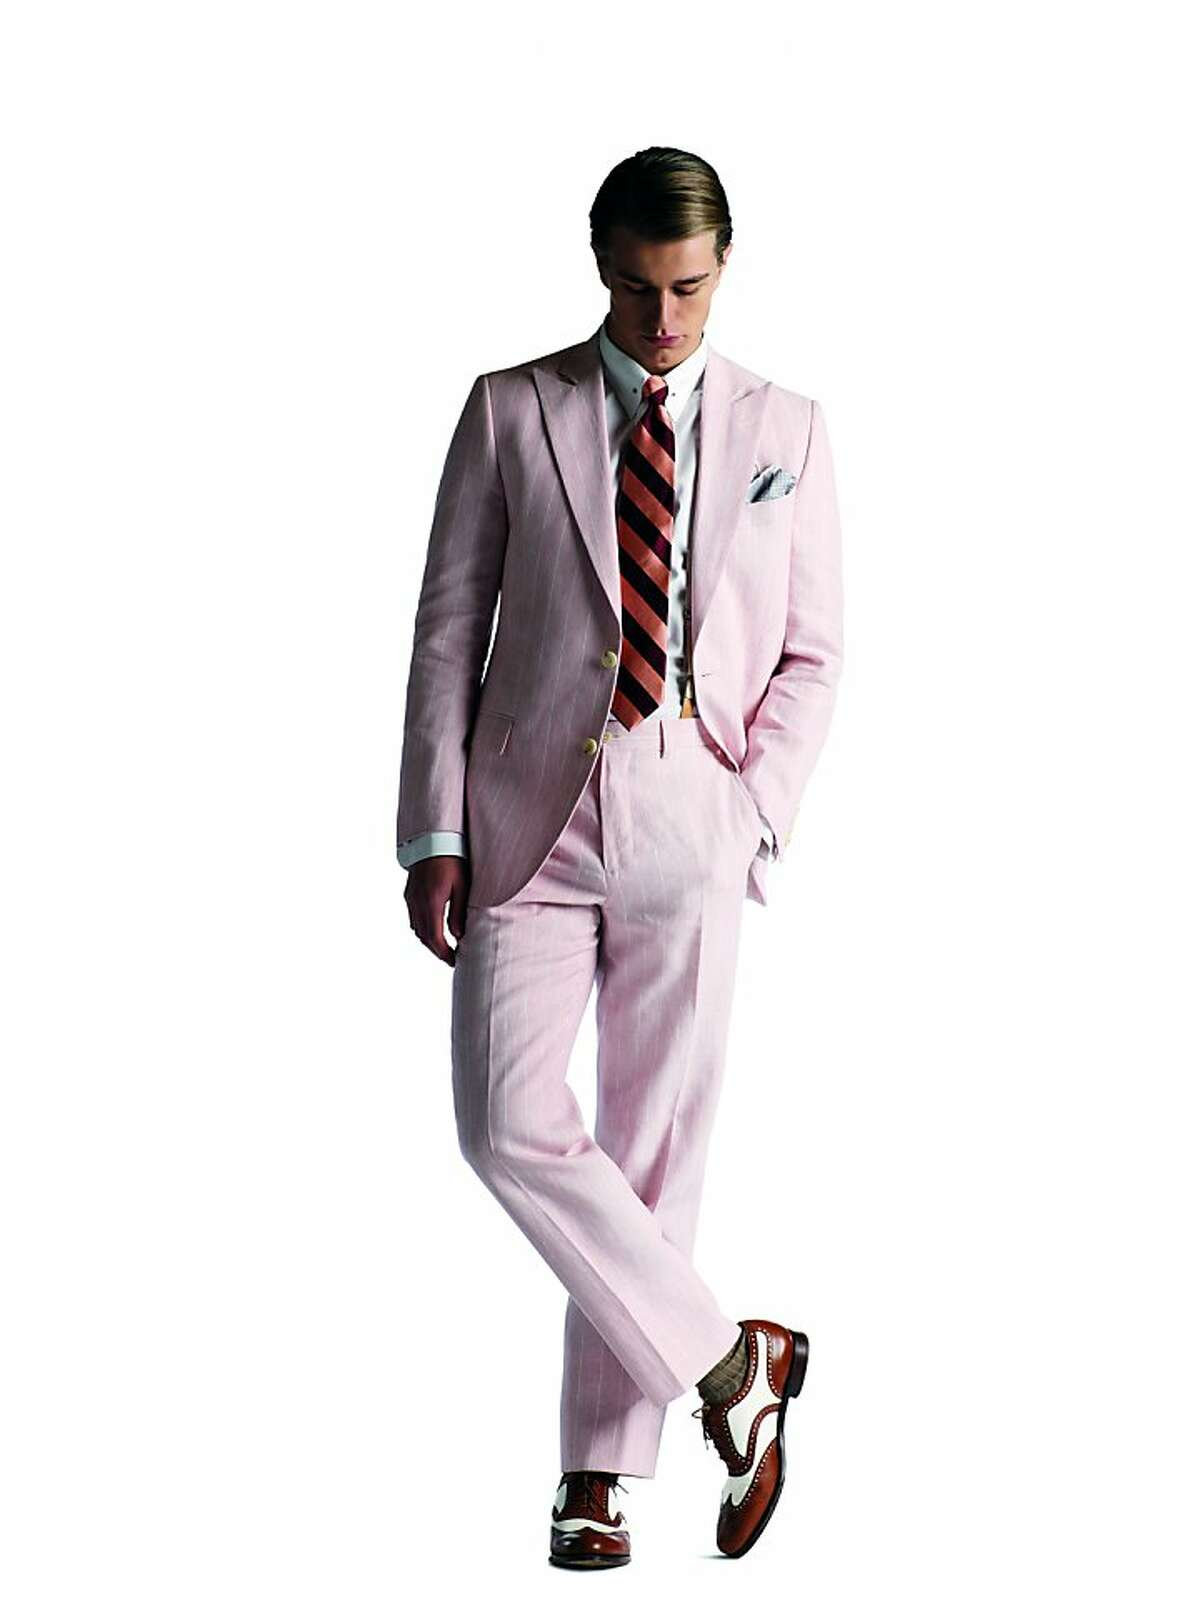 Gatsby's pink suit with a subtle white pinstripe is the menswear piece de resistance of the film.